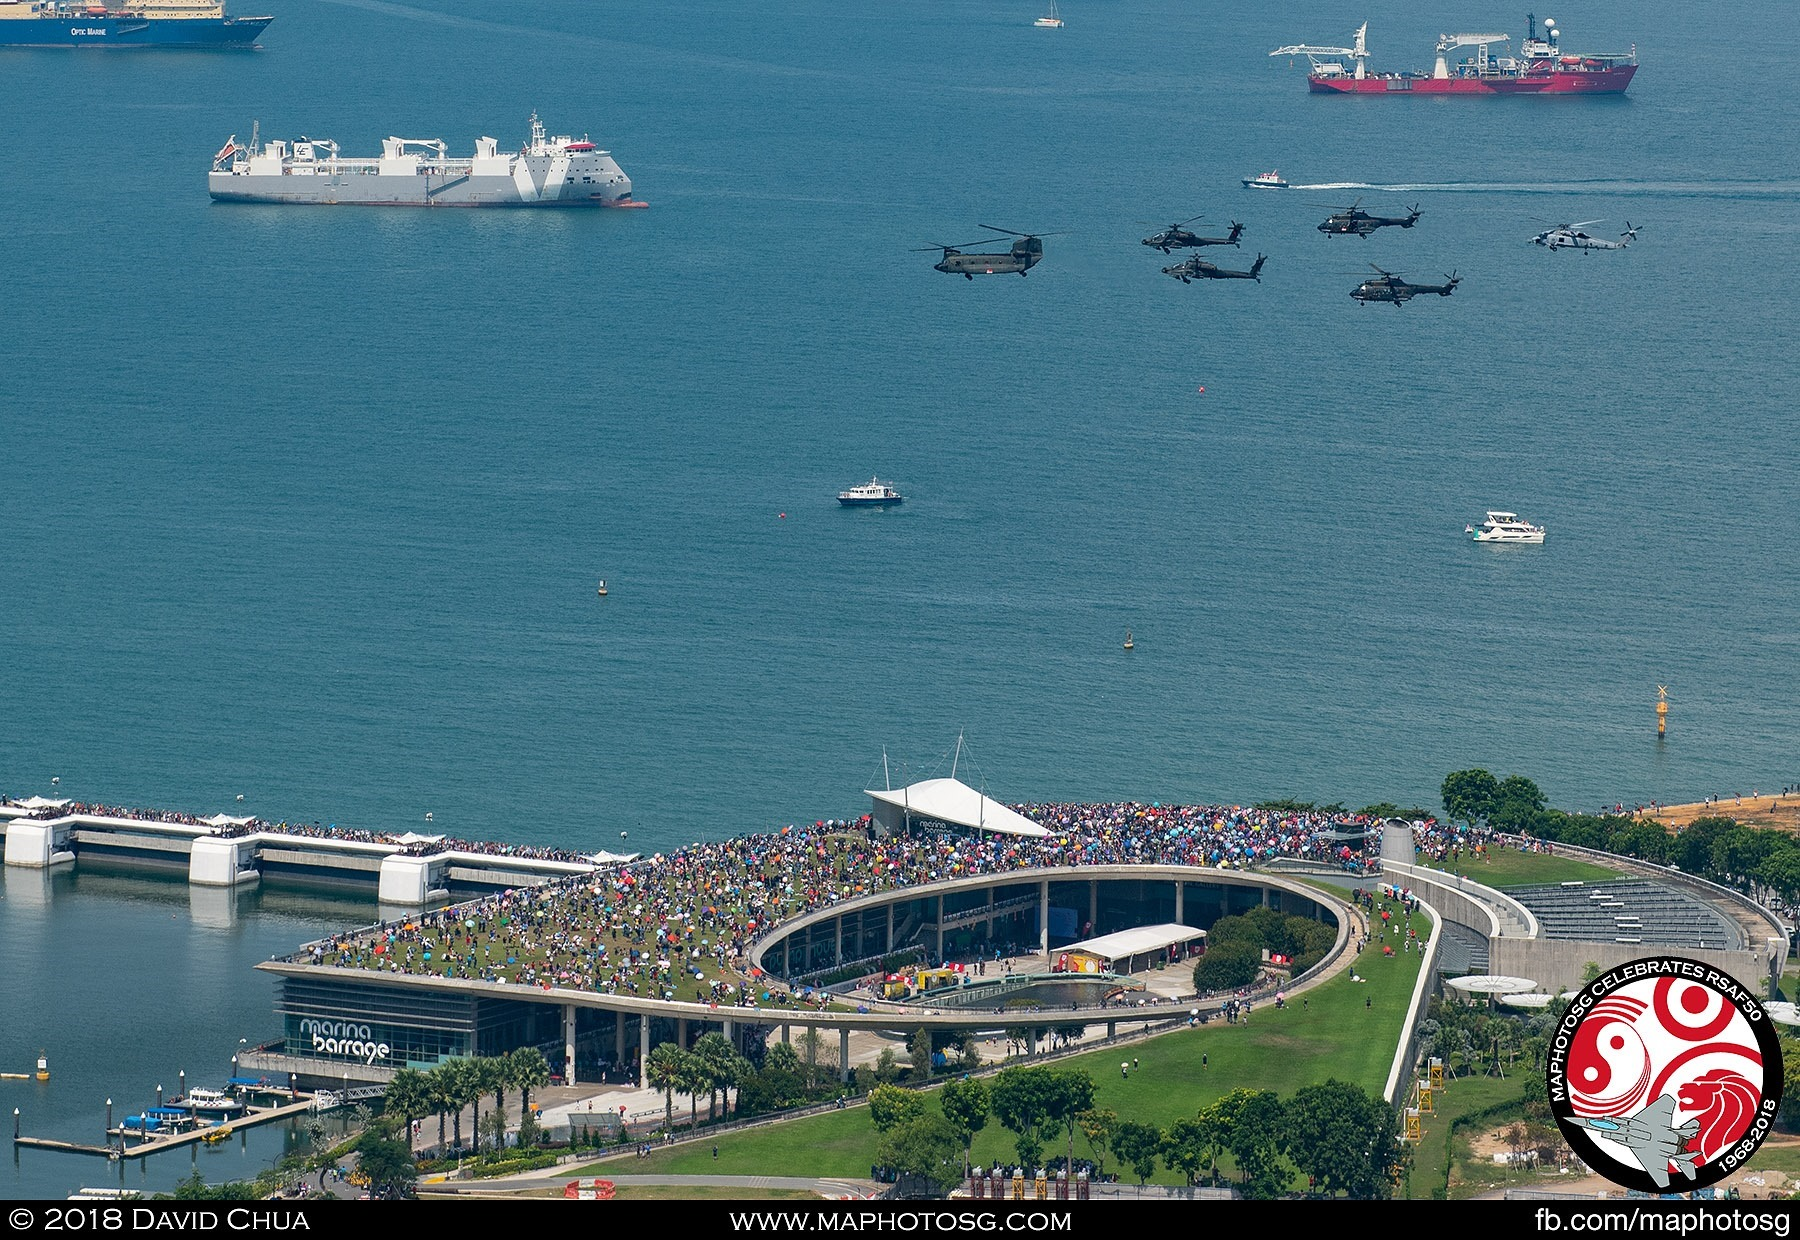 Helicopter formation flying over a packed Marina Barrage during the Saturday afternoon show.